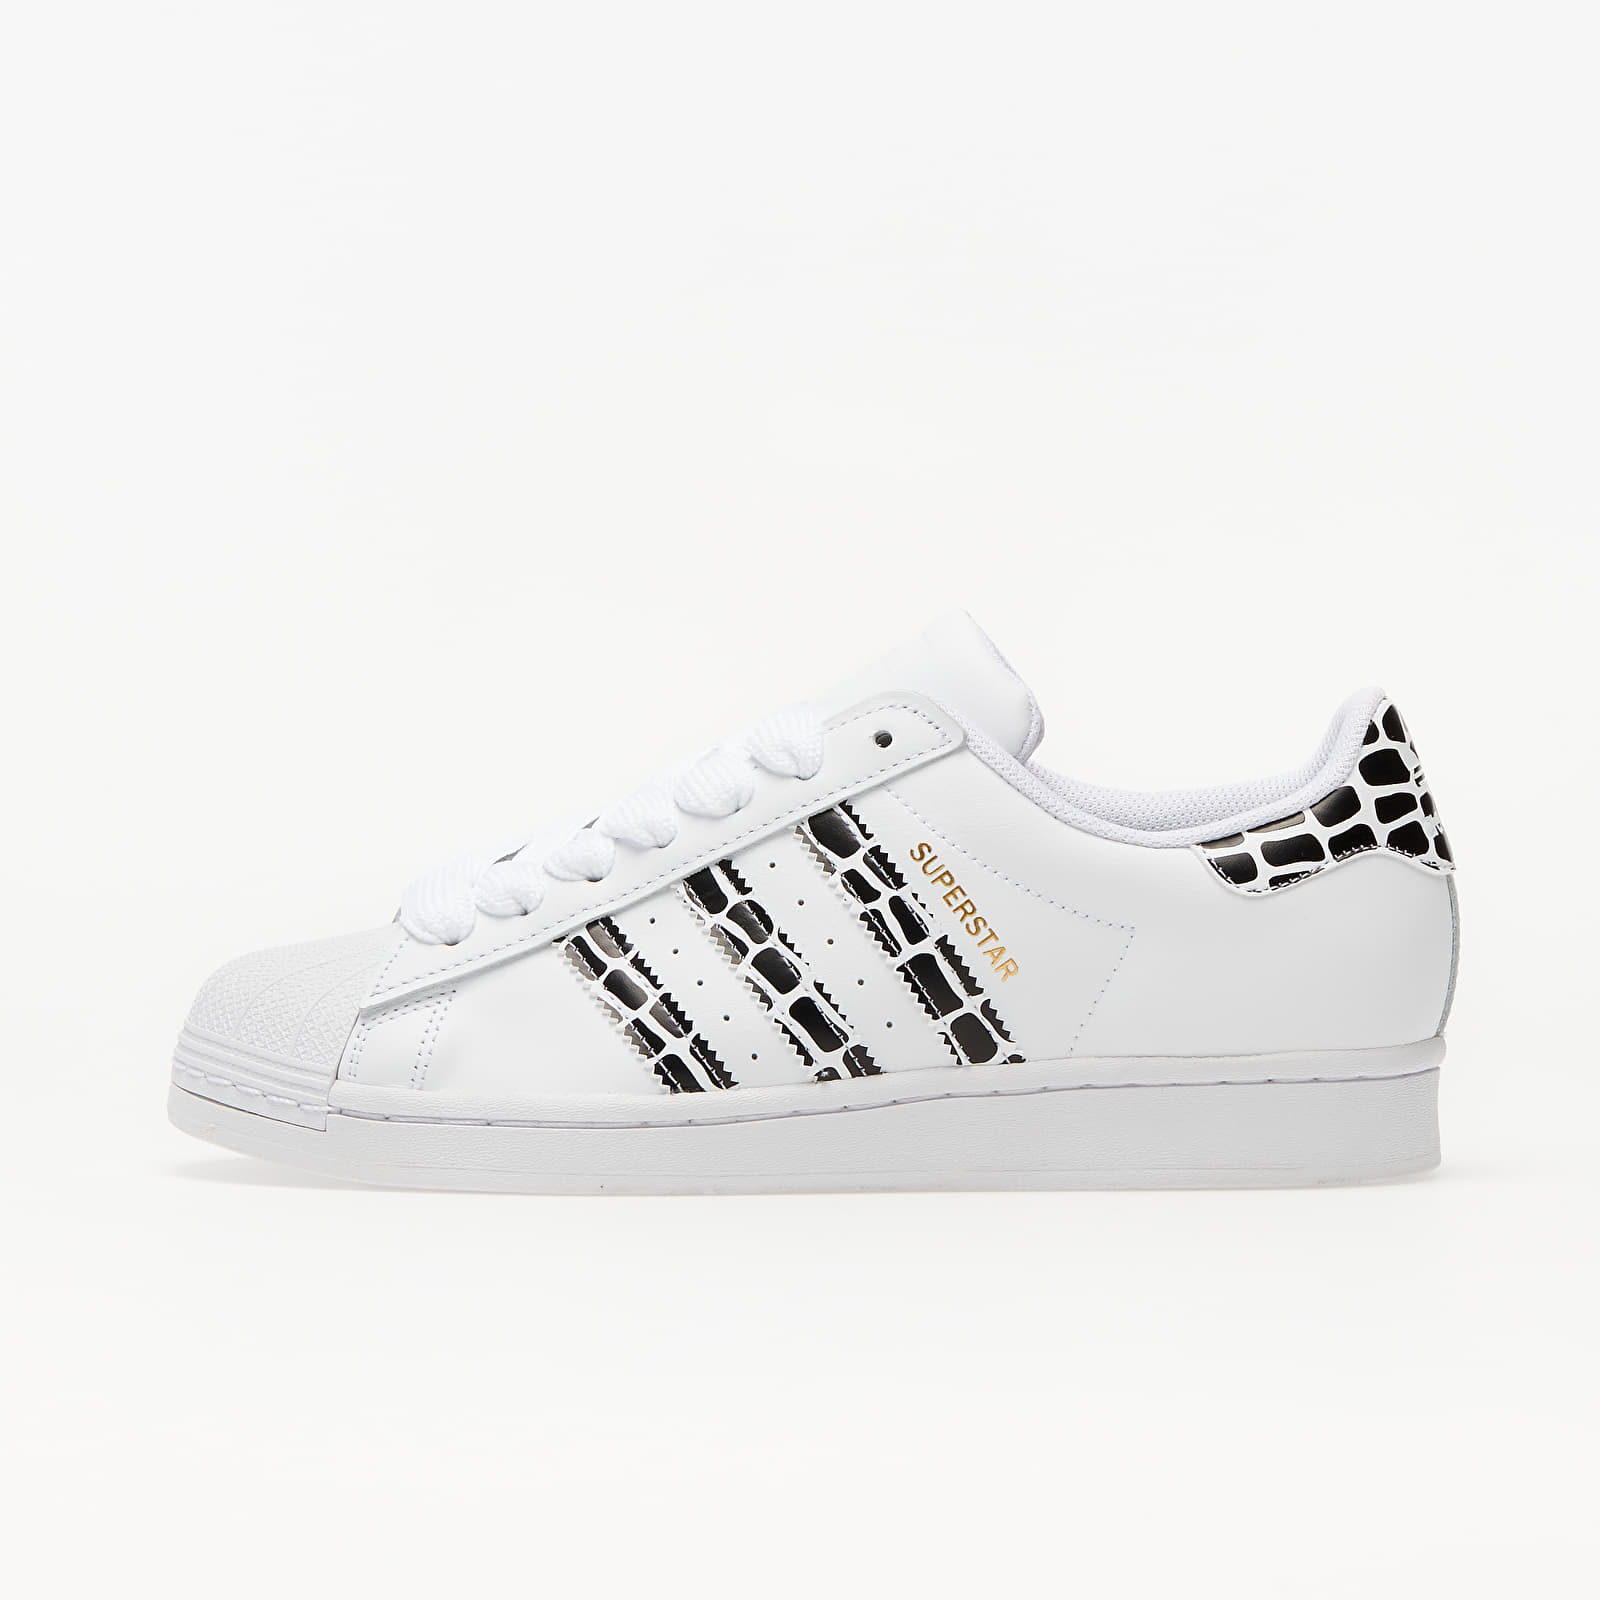 Women's shoes adidas Superstar W Ftw White/ Gold Metalic/ Core Black